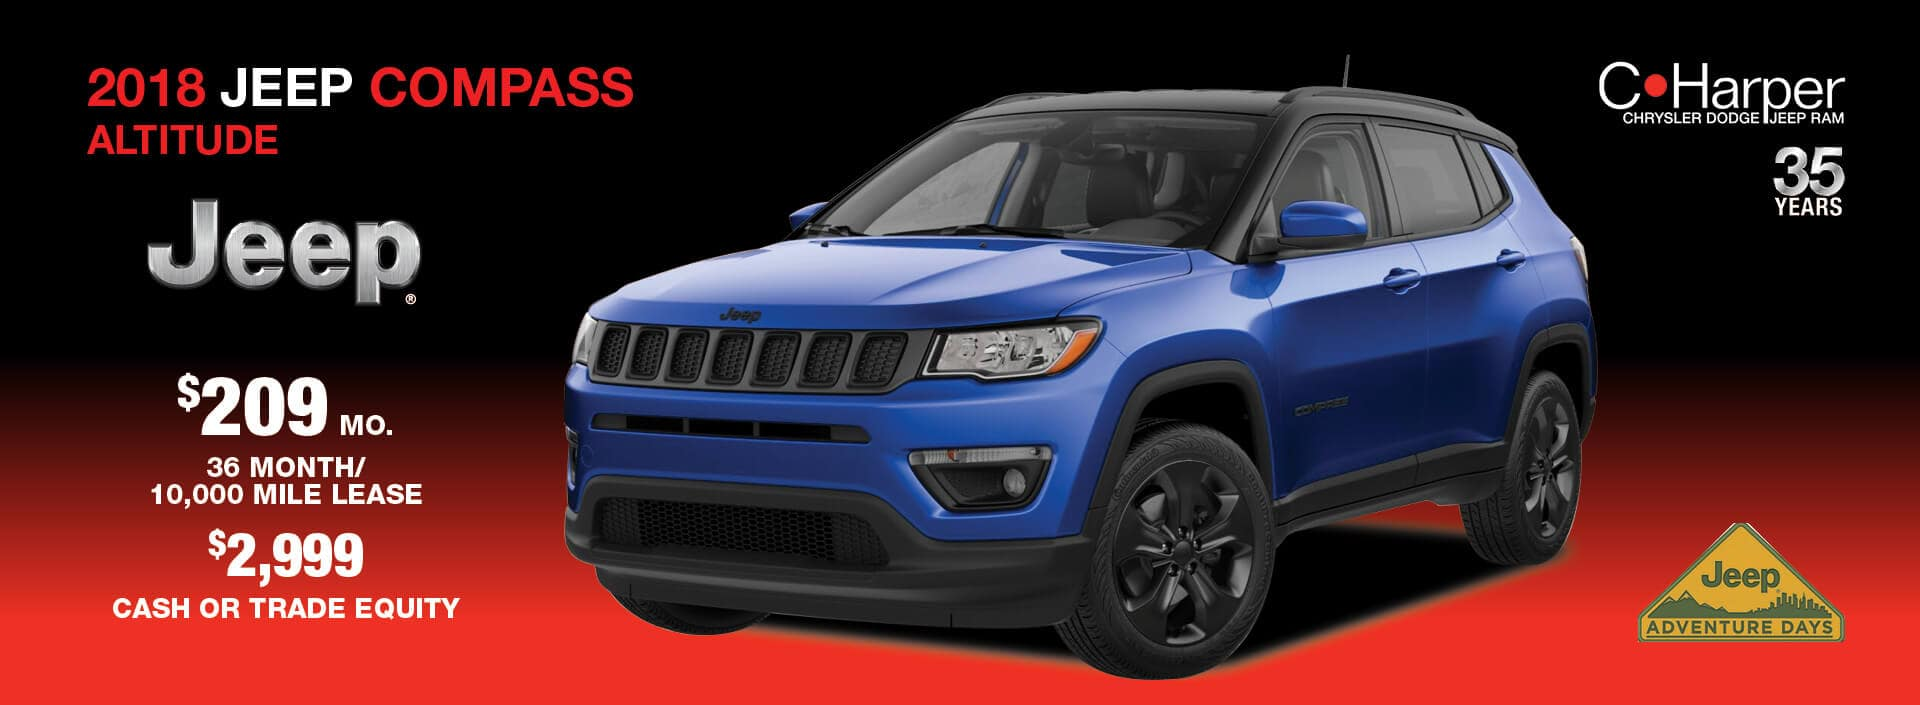 Lease a 2018 Jeep Compass for $209 a month / 36 months